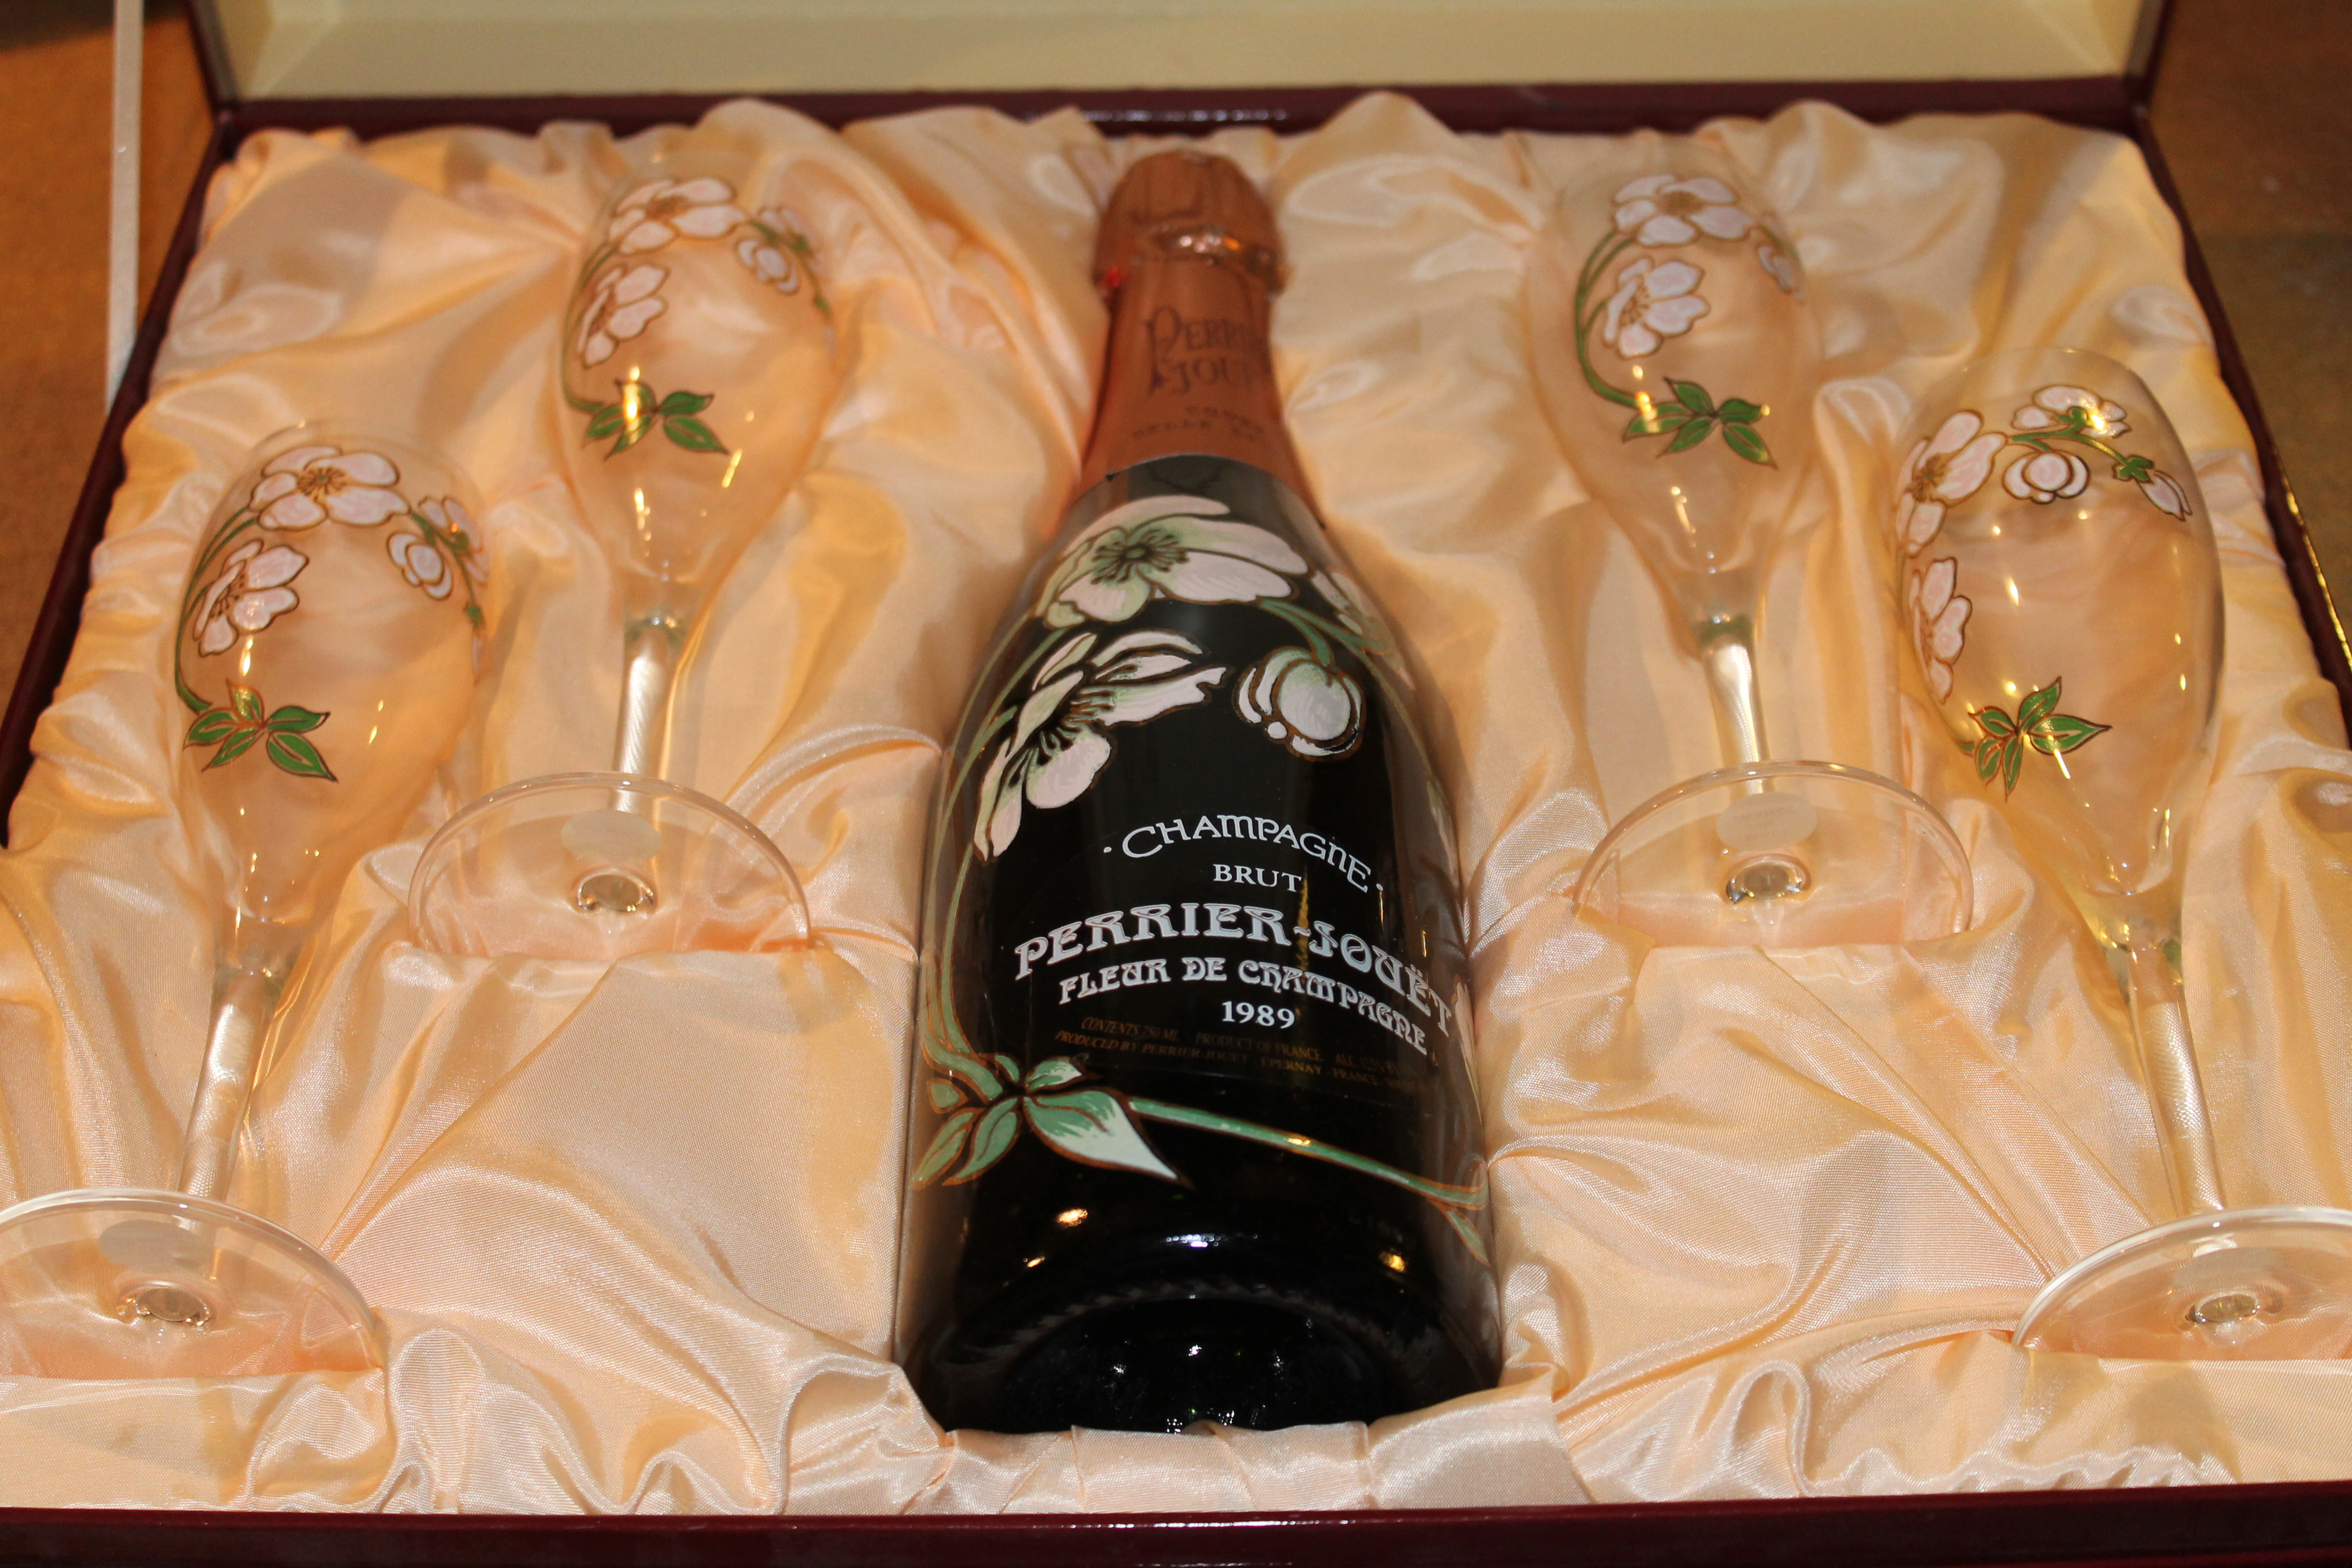 PERRIER JOUET CHAMPAGNE GIFT SET WITH 4 PAINTED GLASSES - For Sale